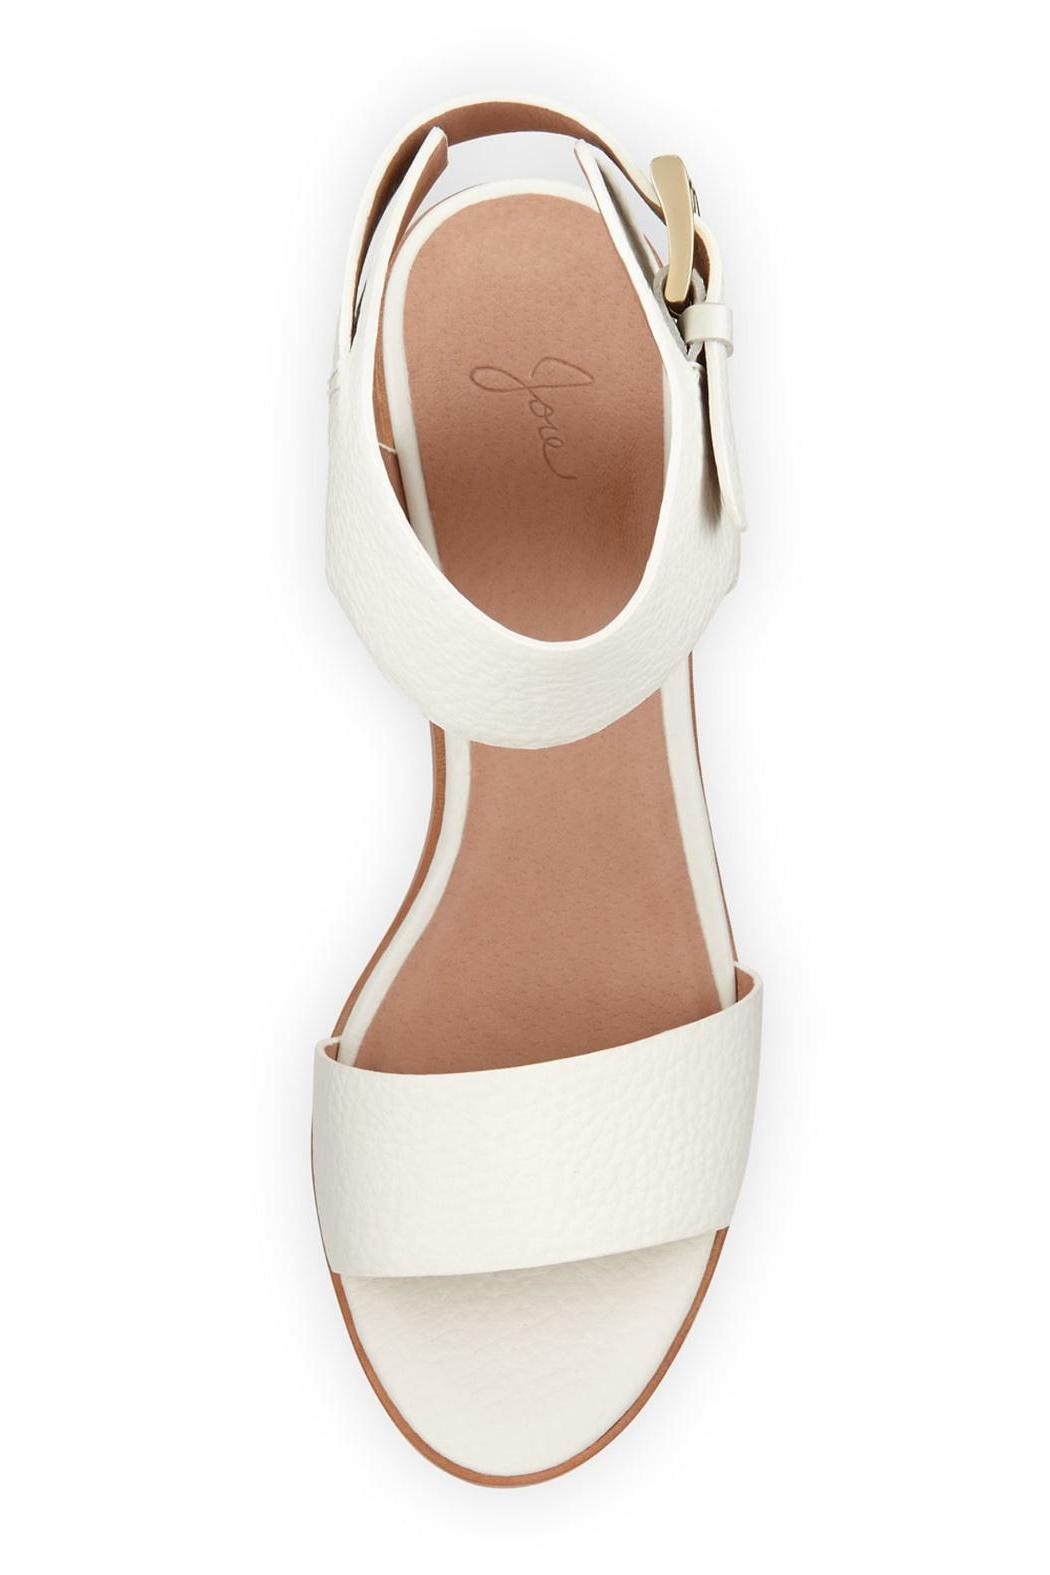 Joie Bea Sandals - Front Full Image